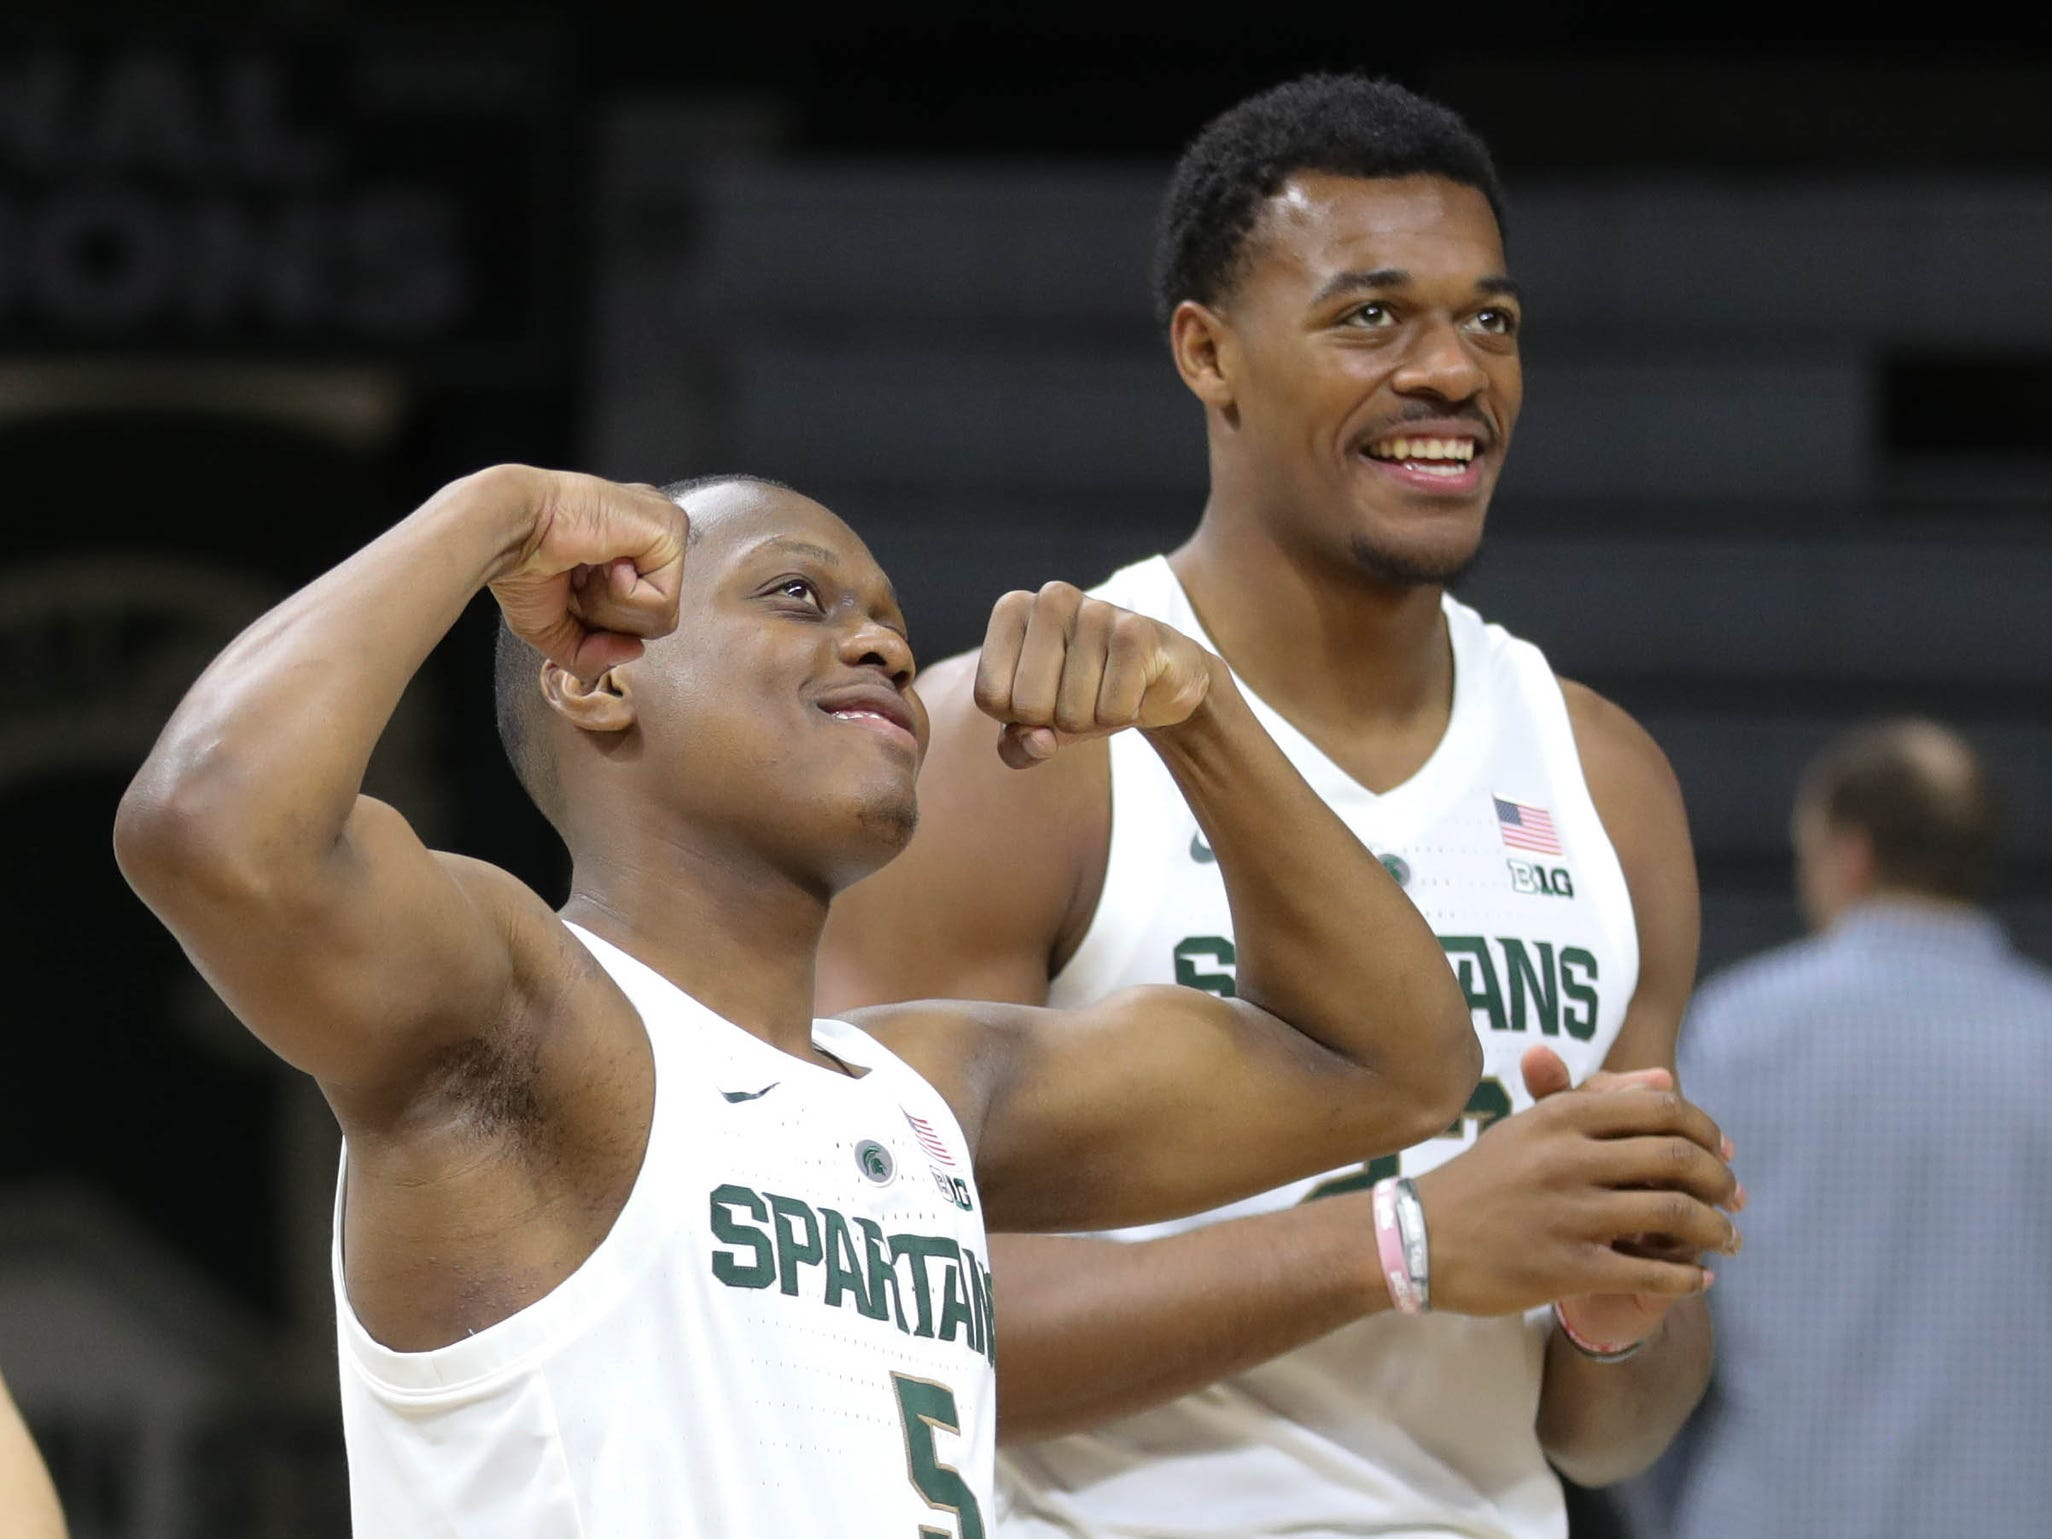 Michigan State guard Cassius Winston, left, and Xavier Tillman have a little fun during media day Thursday, Oct. 25, 2018 at Breslin Center in East Lansing.